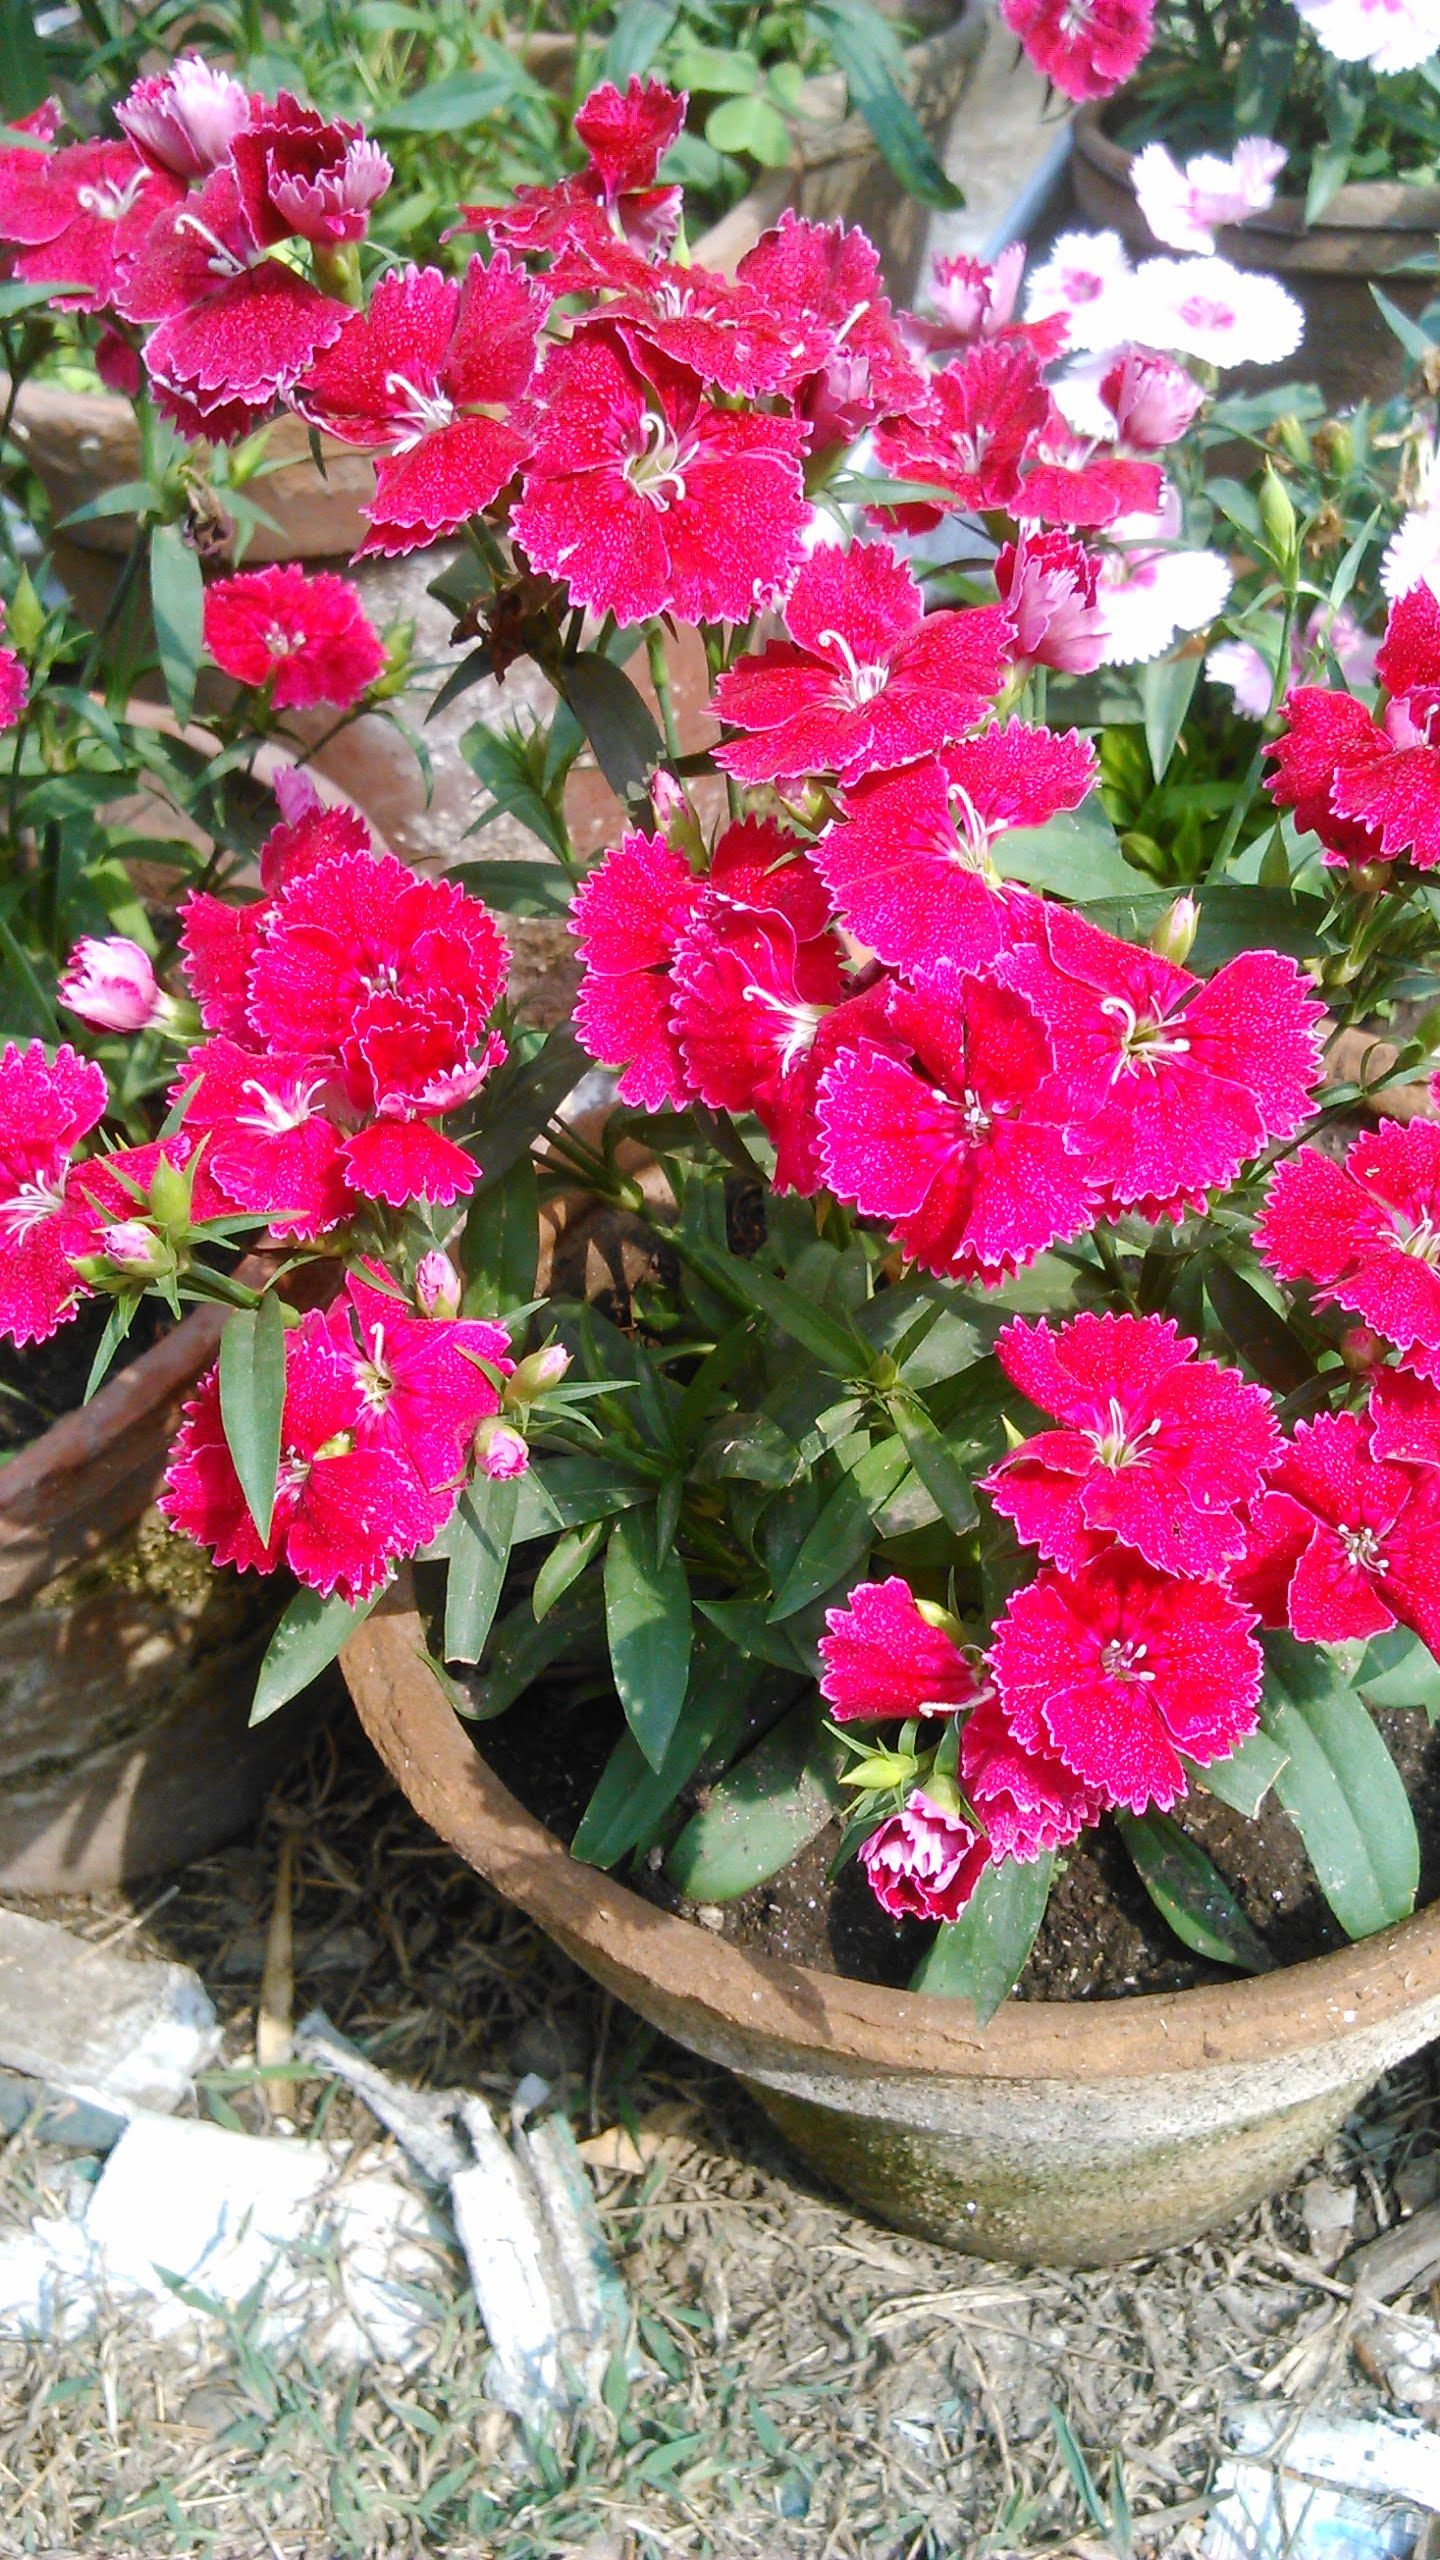 Pink Pansy Beautiful Flower Pinkpansy Garden Gardening Potted